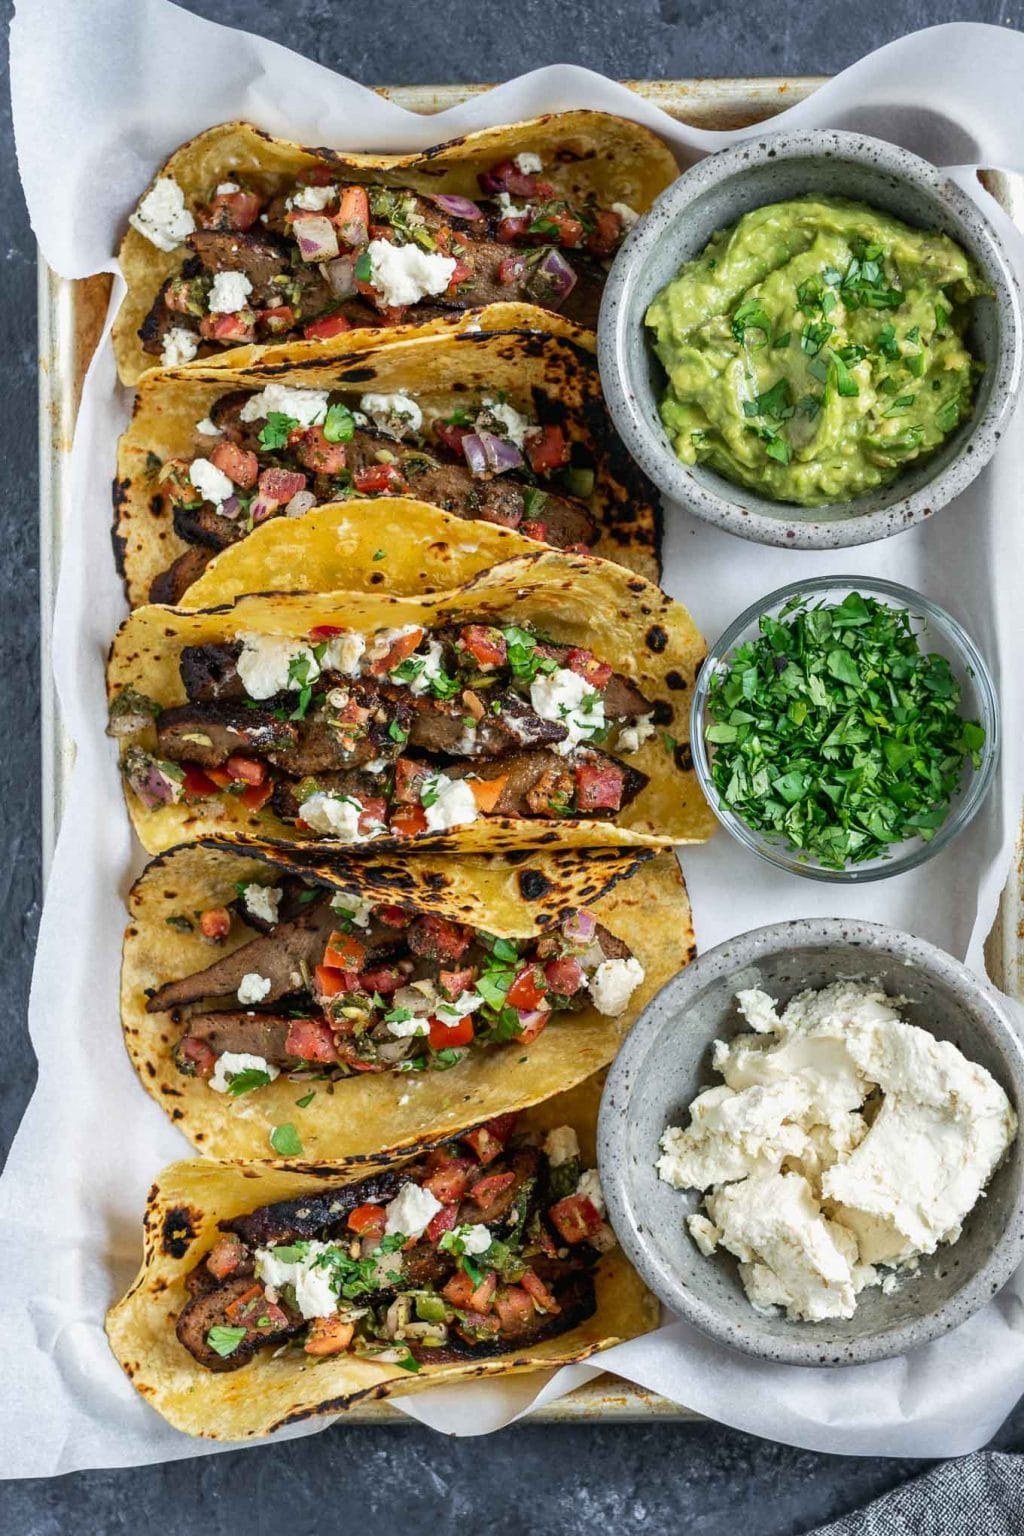 Vegan seitan carne asada tacos topped with pico de gallo and vegan queso fresco with guacamole, queso fresco, and cilantro to serve. 5 tacos assembled on a tray.